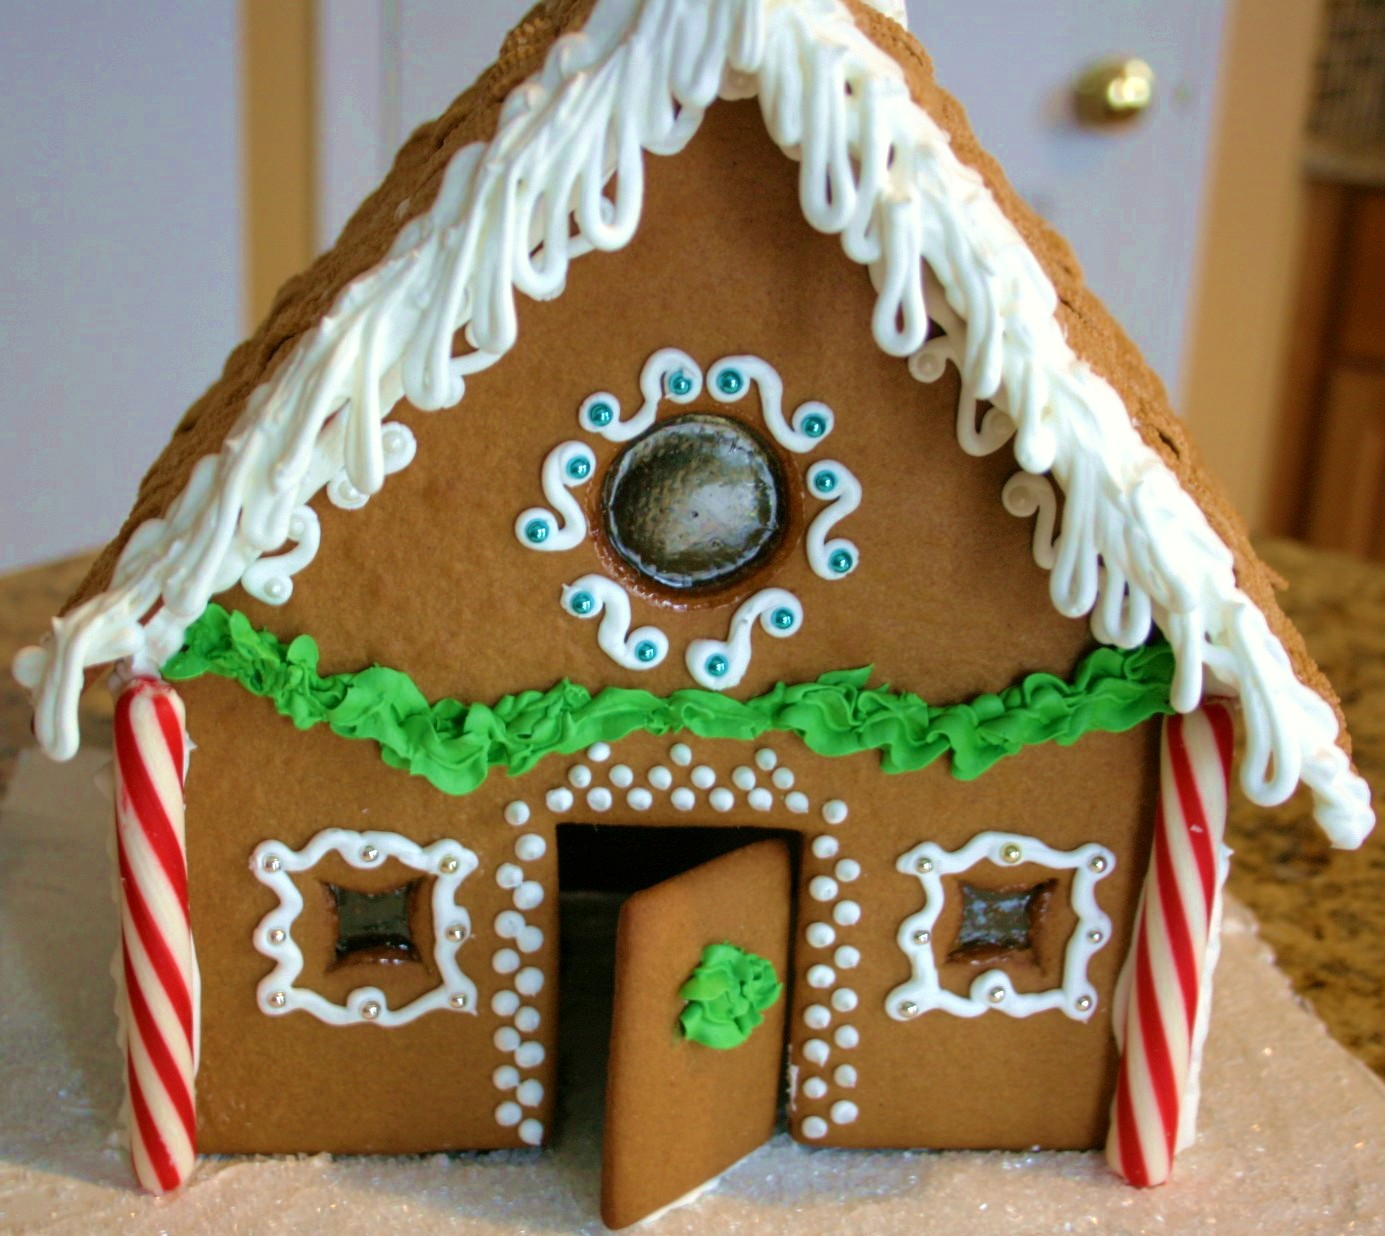 Gingerbread House, From Dough to Decorating